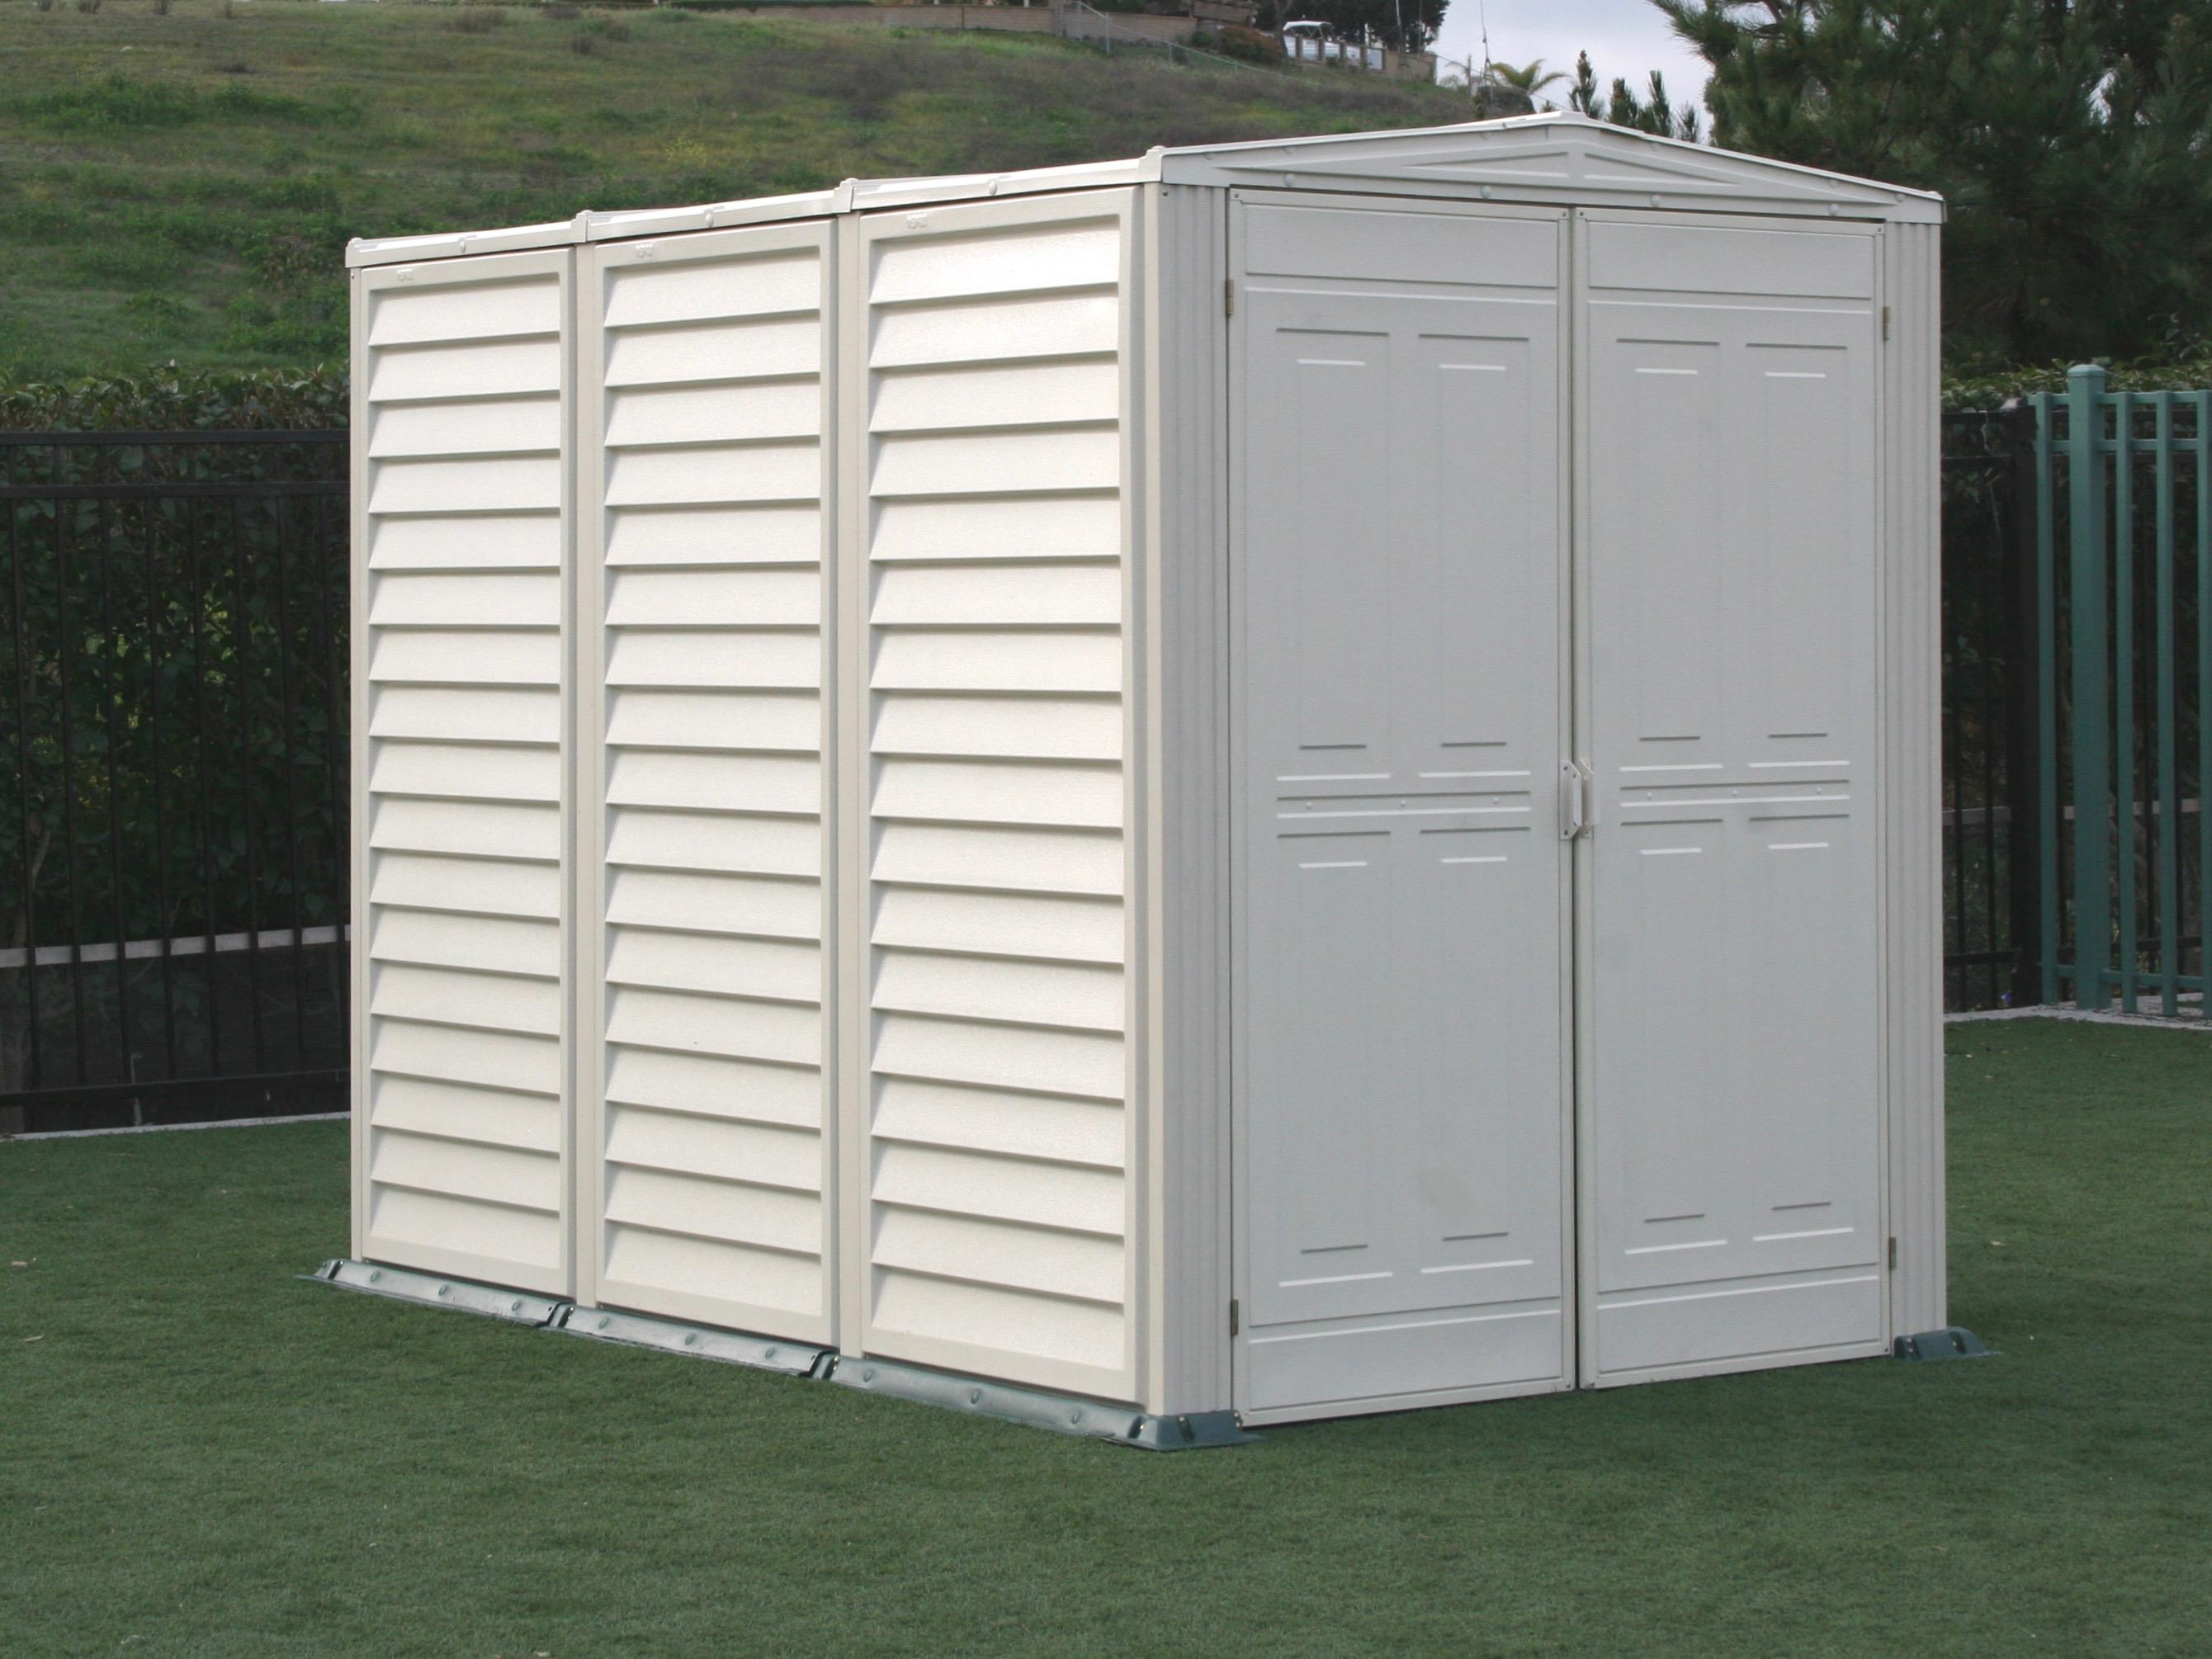 Duramax 00882 yard mate 5x8 storage shed on sale with free for Garden shed 8x5